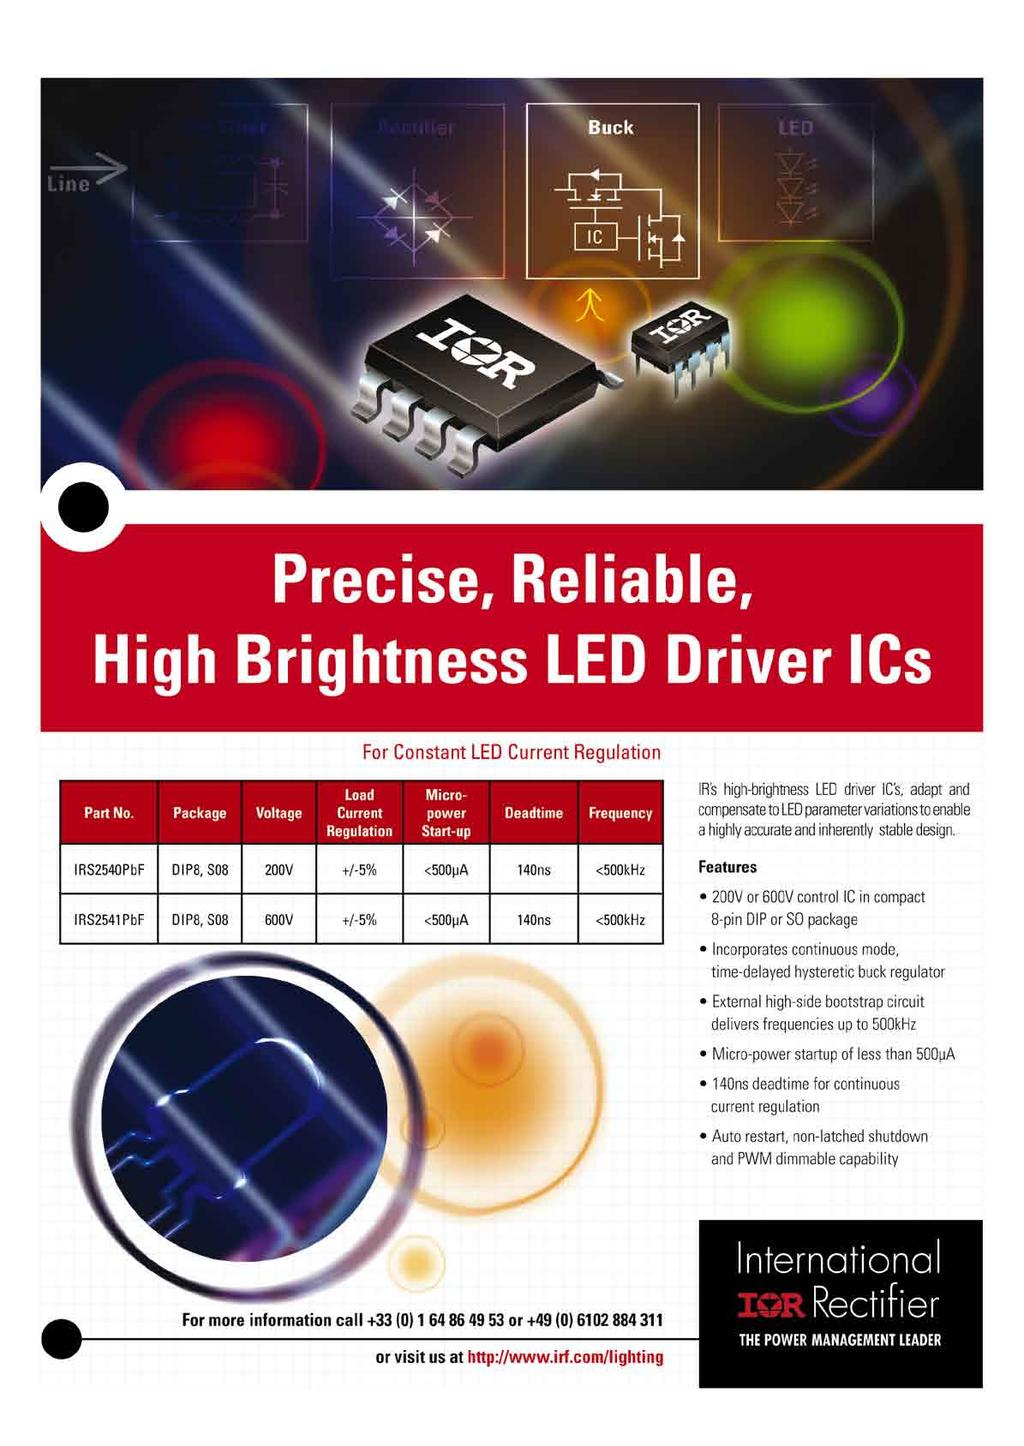 Review Led Electronics Pdf New Control Circuit Using Irs2530d Diagram 38 Professional Lpr Editorial Calendar 2009 P U B L I S H E D Issue Main Feature Reservation By Files Publication Date